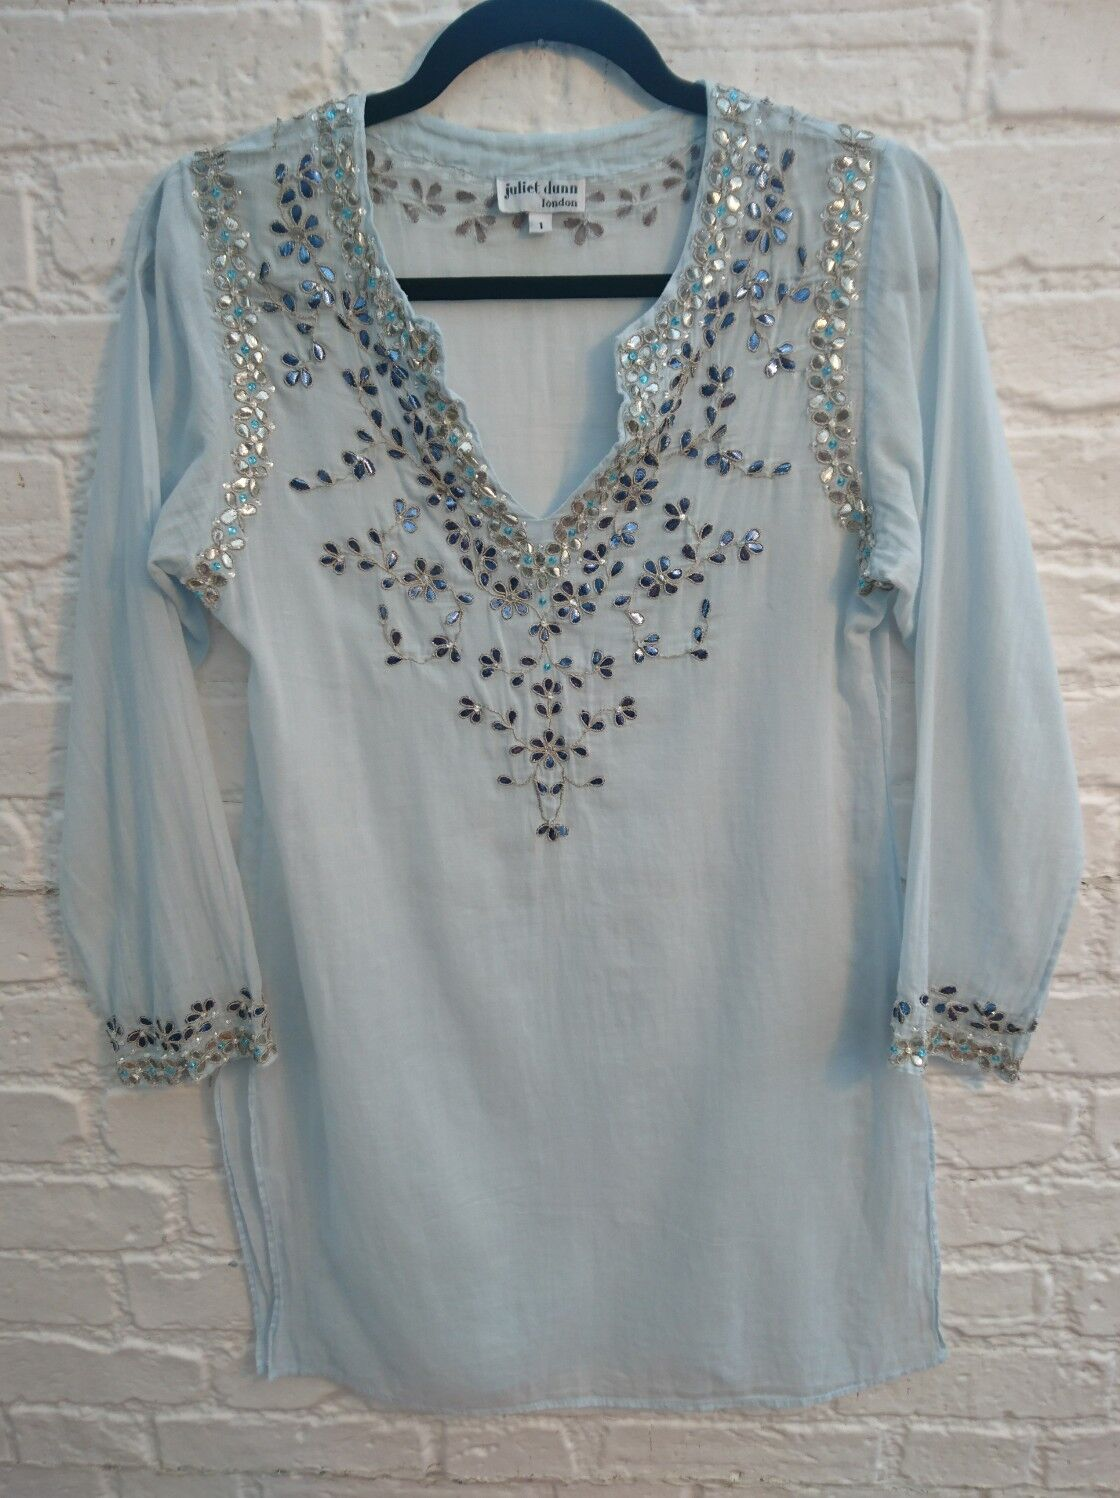 Juliet Dunn Blau Sequin Kaftan Dress Größe 1 UK 8 10 Embellished Hippy Boho Top